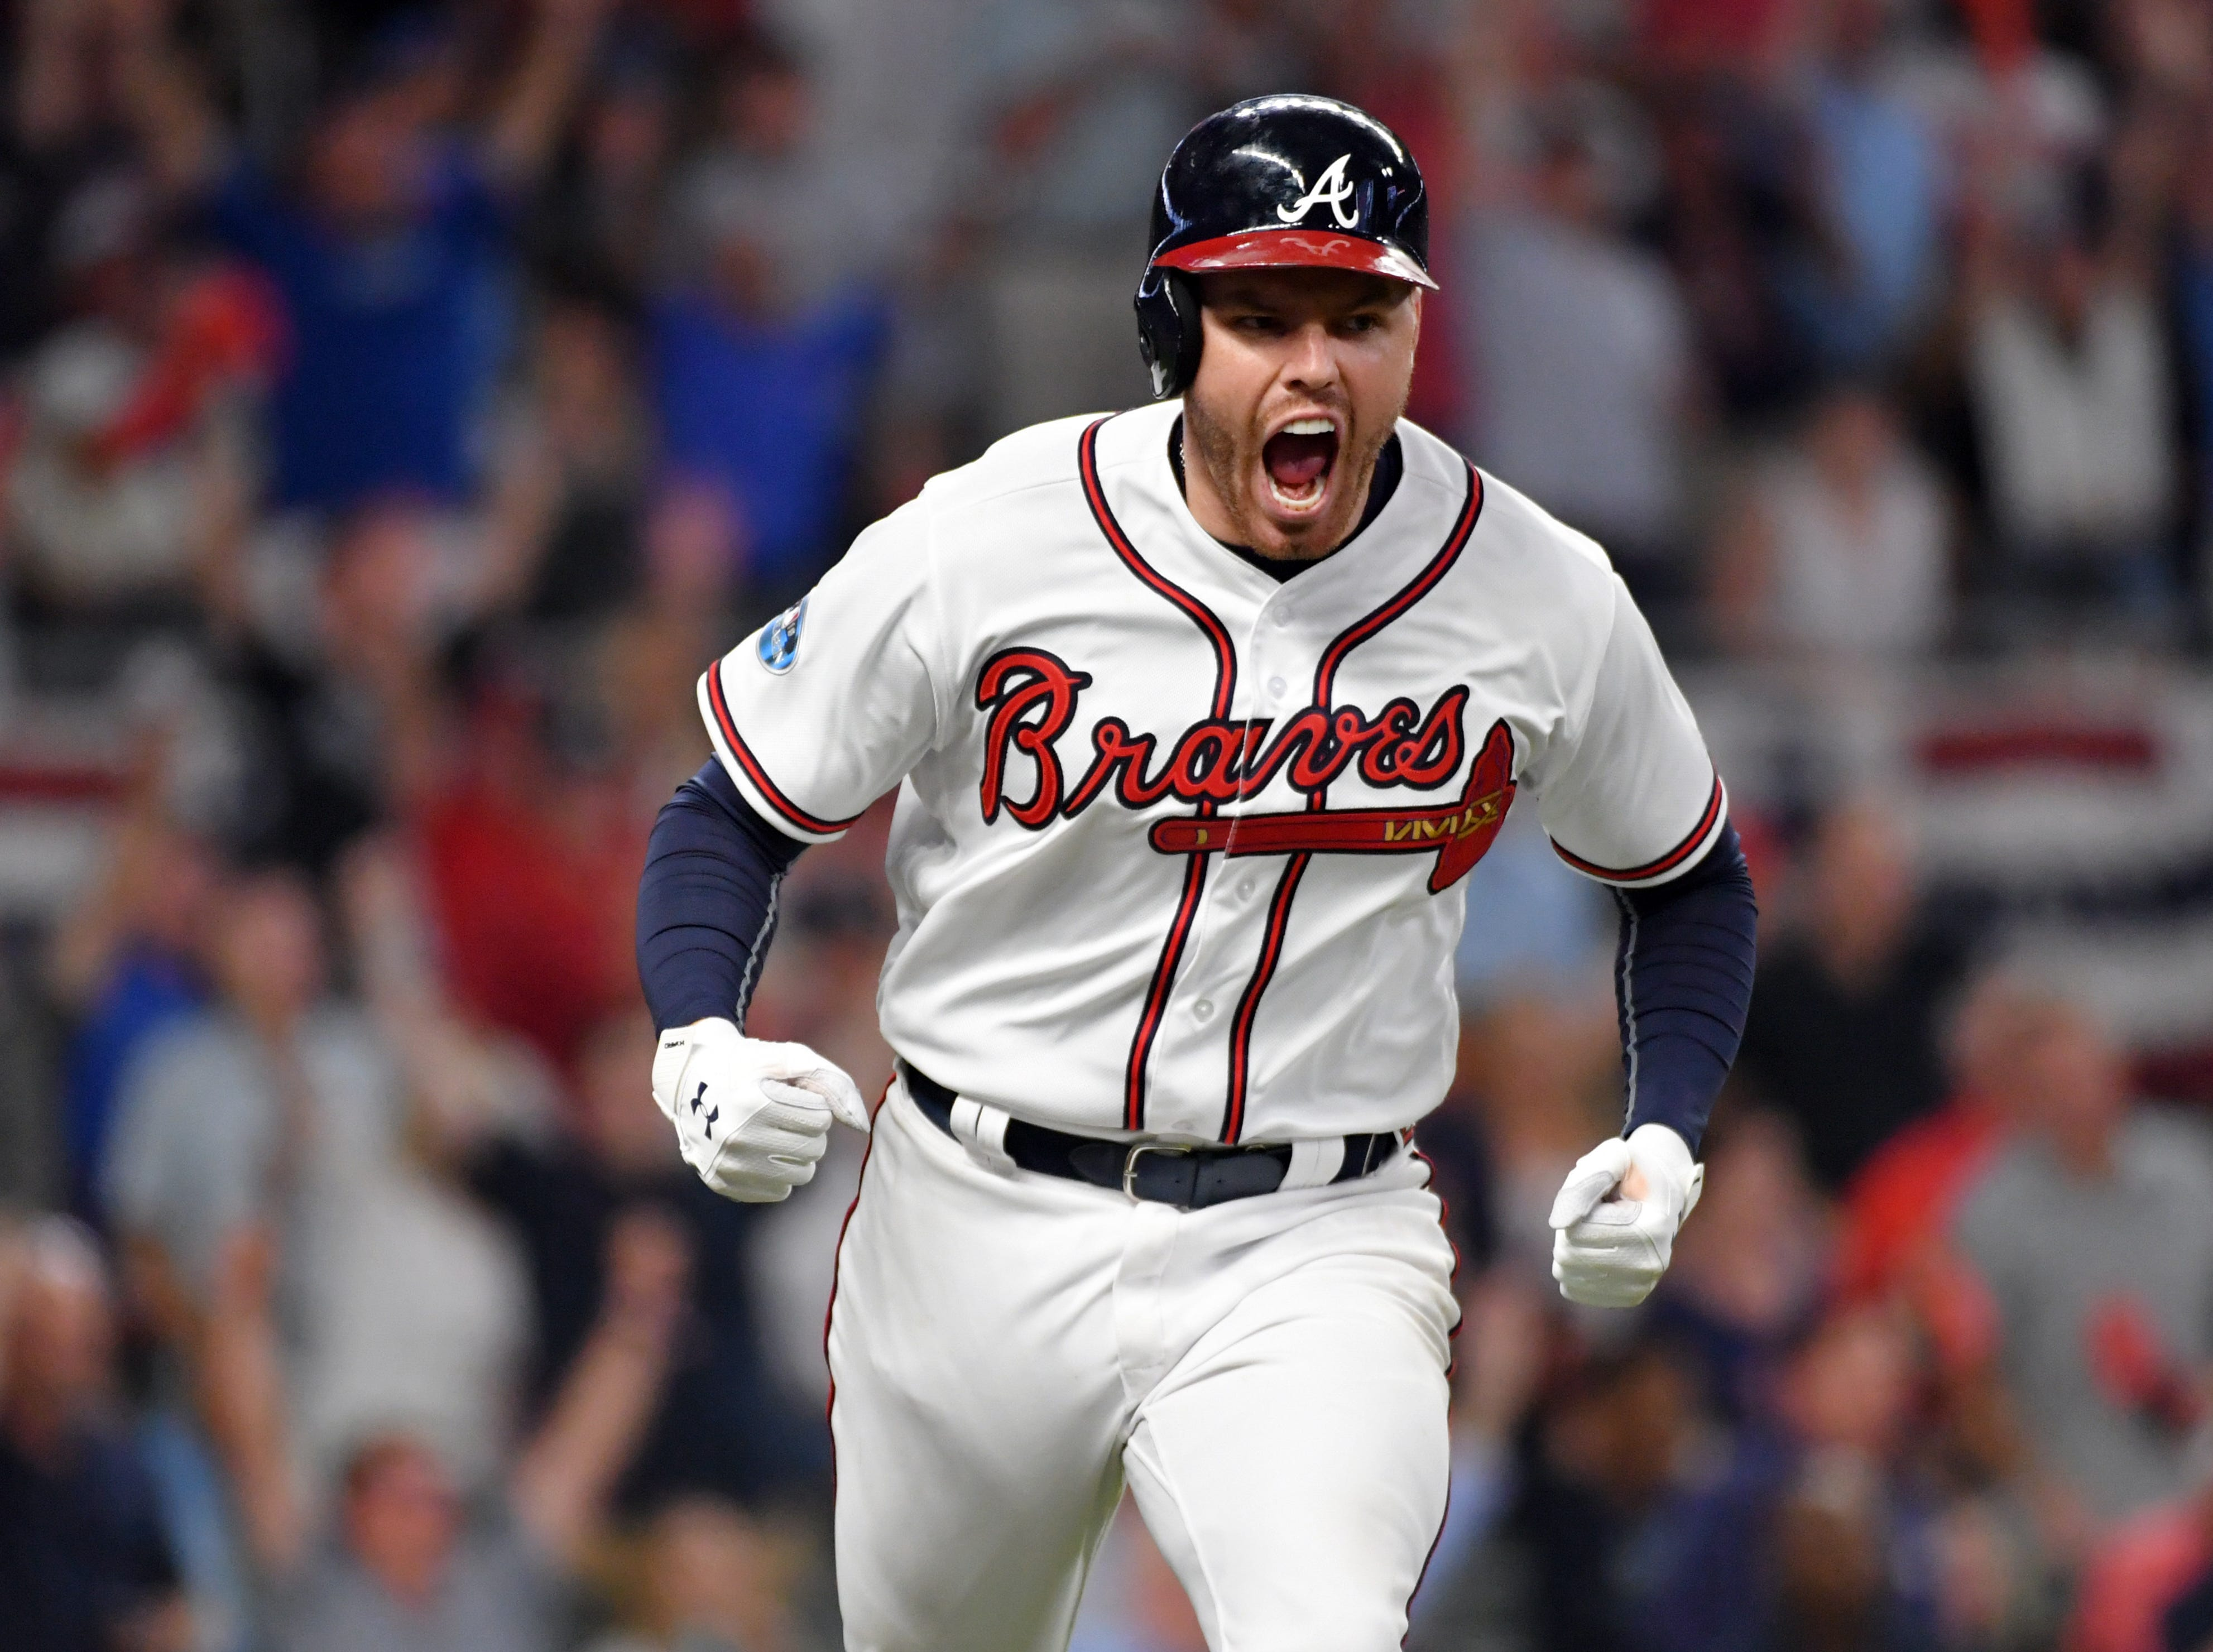 NLDS Game 3: Braves first baseman Freddie Freeman celebrates his solo homer in the sixth inning.